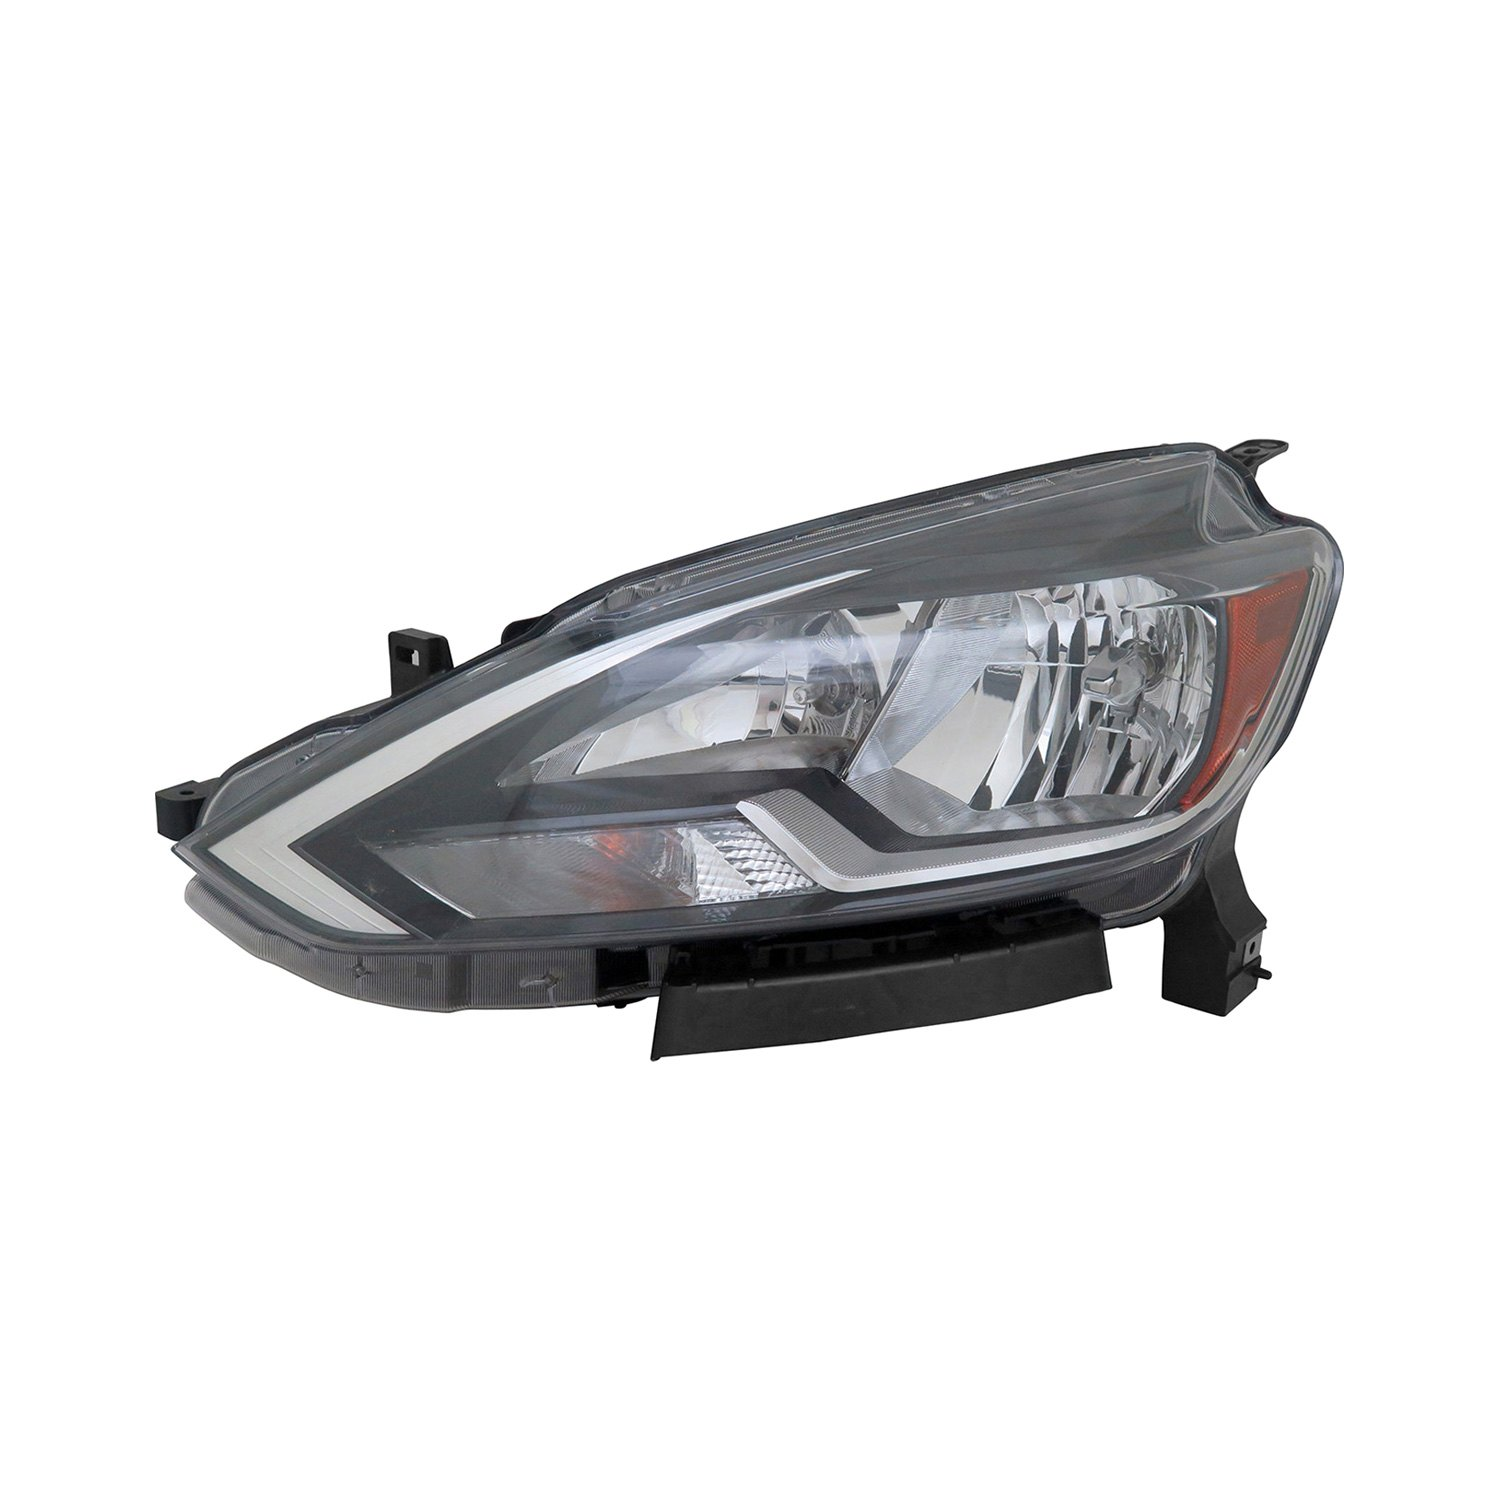 2016 Nissan Nv3500 Hd Passenger Exterior: For Nissan Sentra 2016-2018 Replace NI2502244C Driver Side